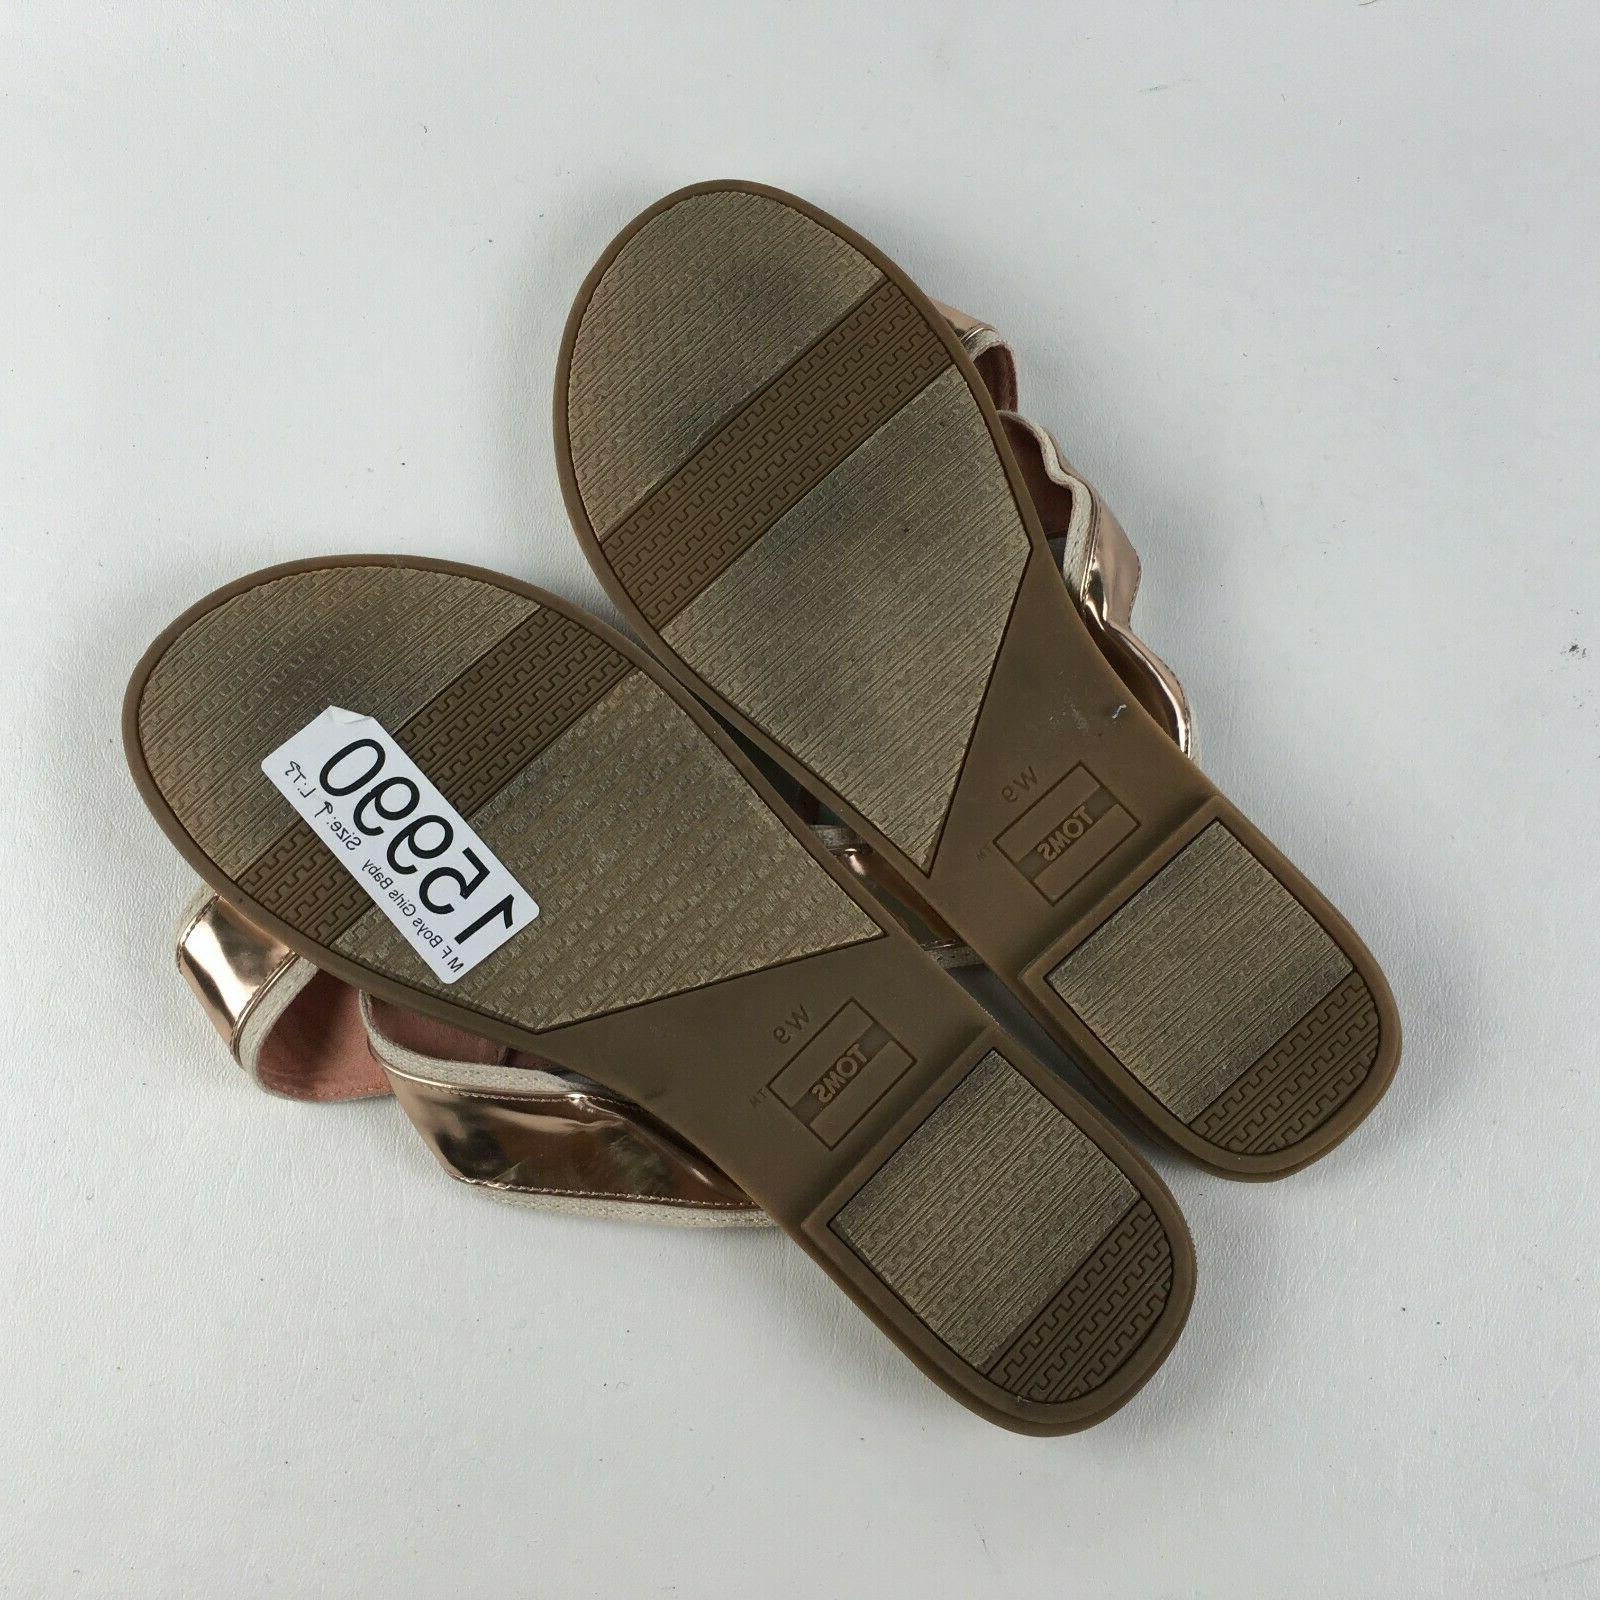 Toms Womens Gold Shoes Spring Sandals